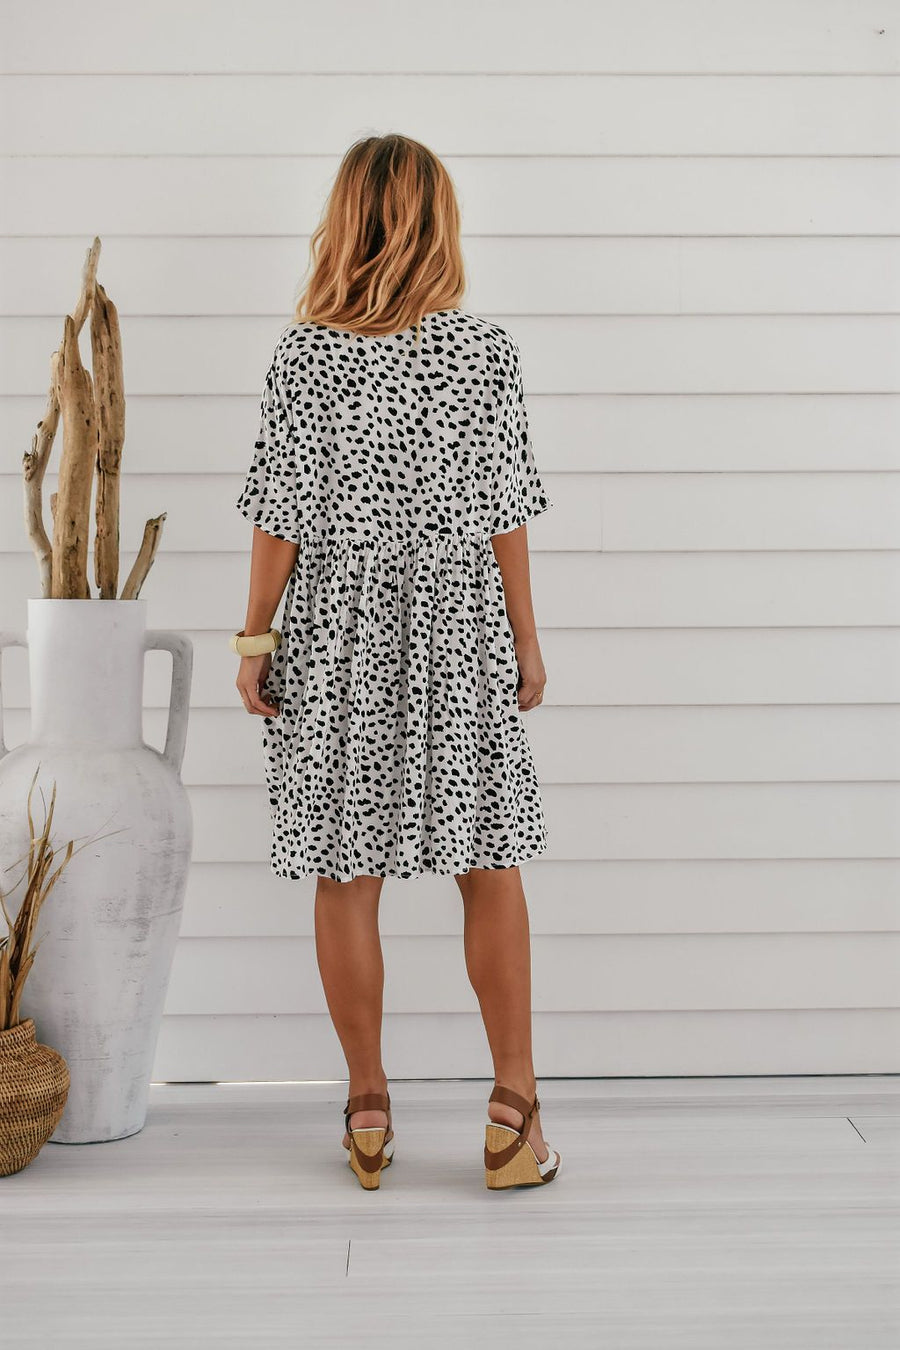 Lucy Tunic | Monochrome Leopard - Gray Label Dress Gray.Label